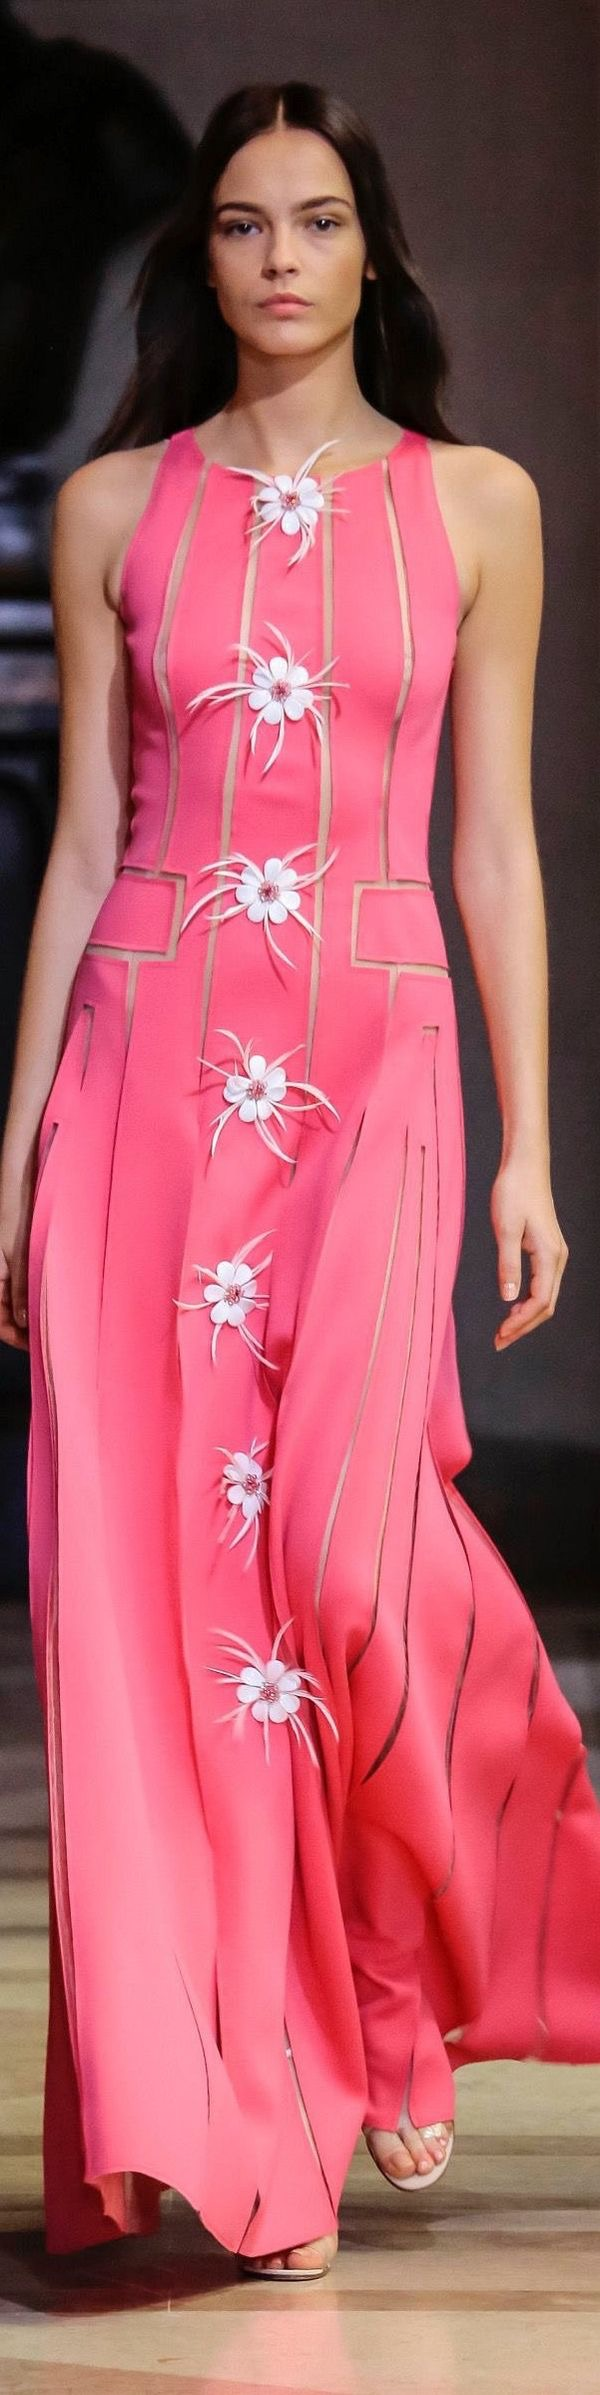 Carolina Herrera. | fashion | Pinterest | Rosas